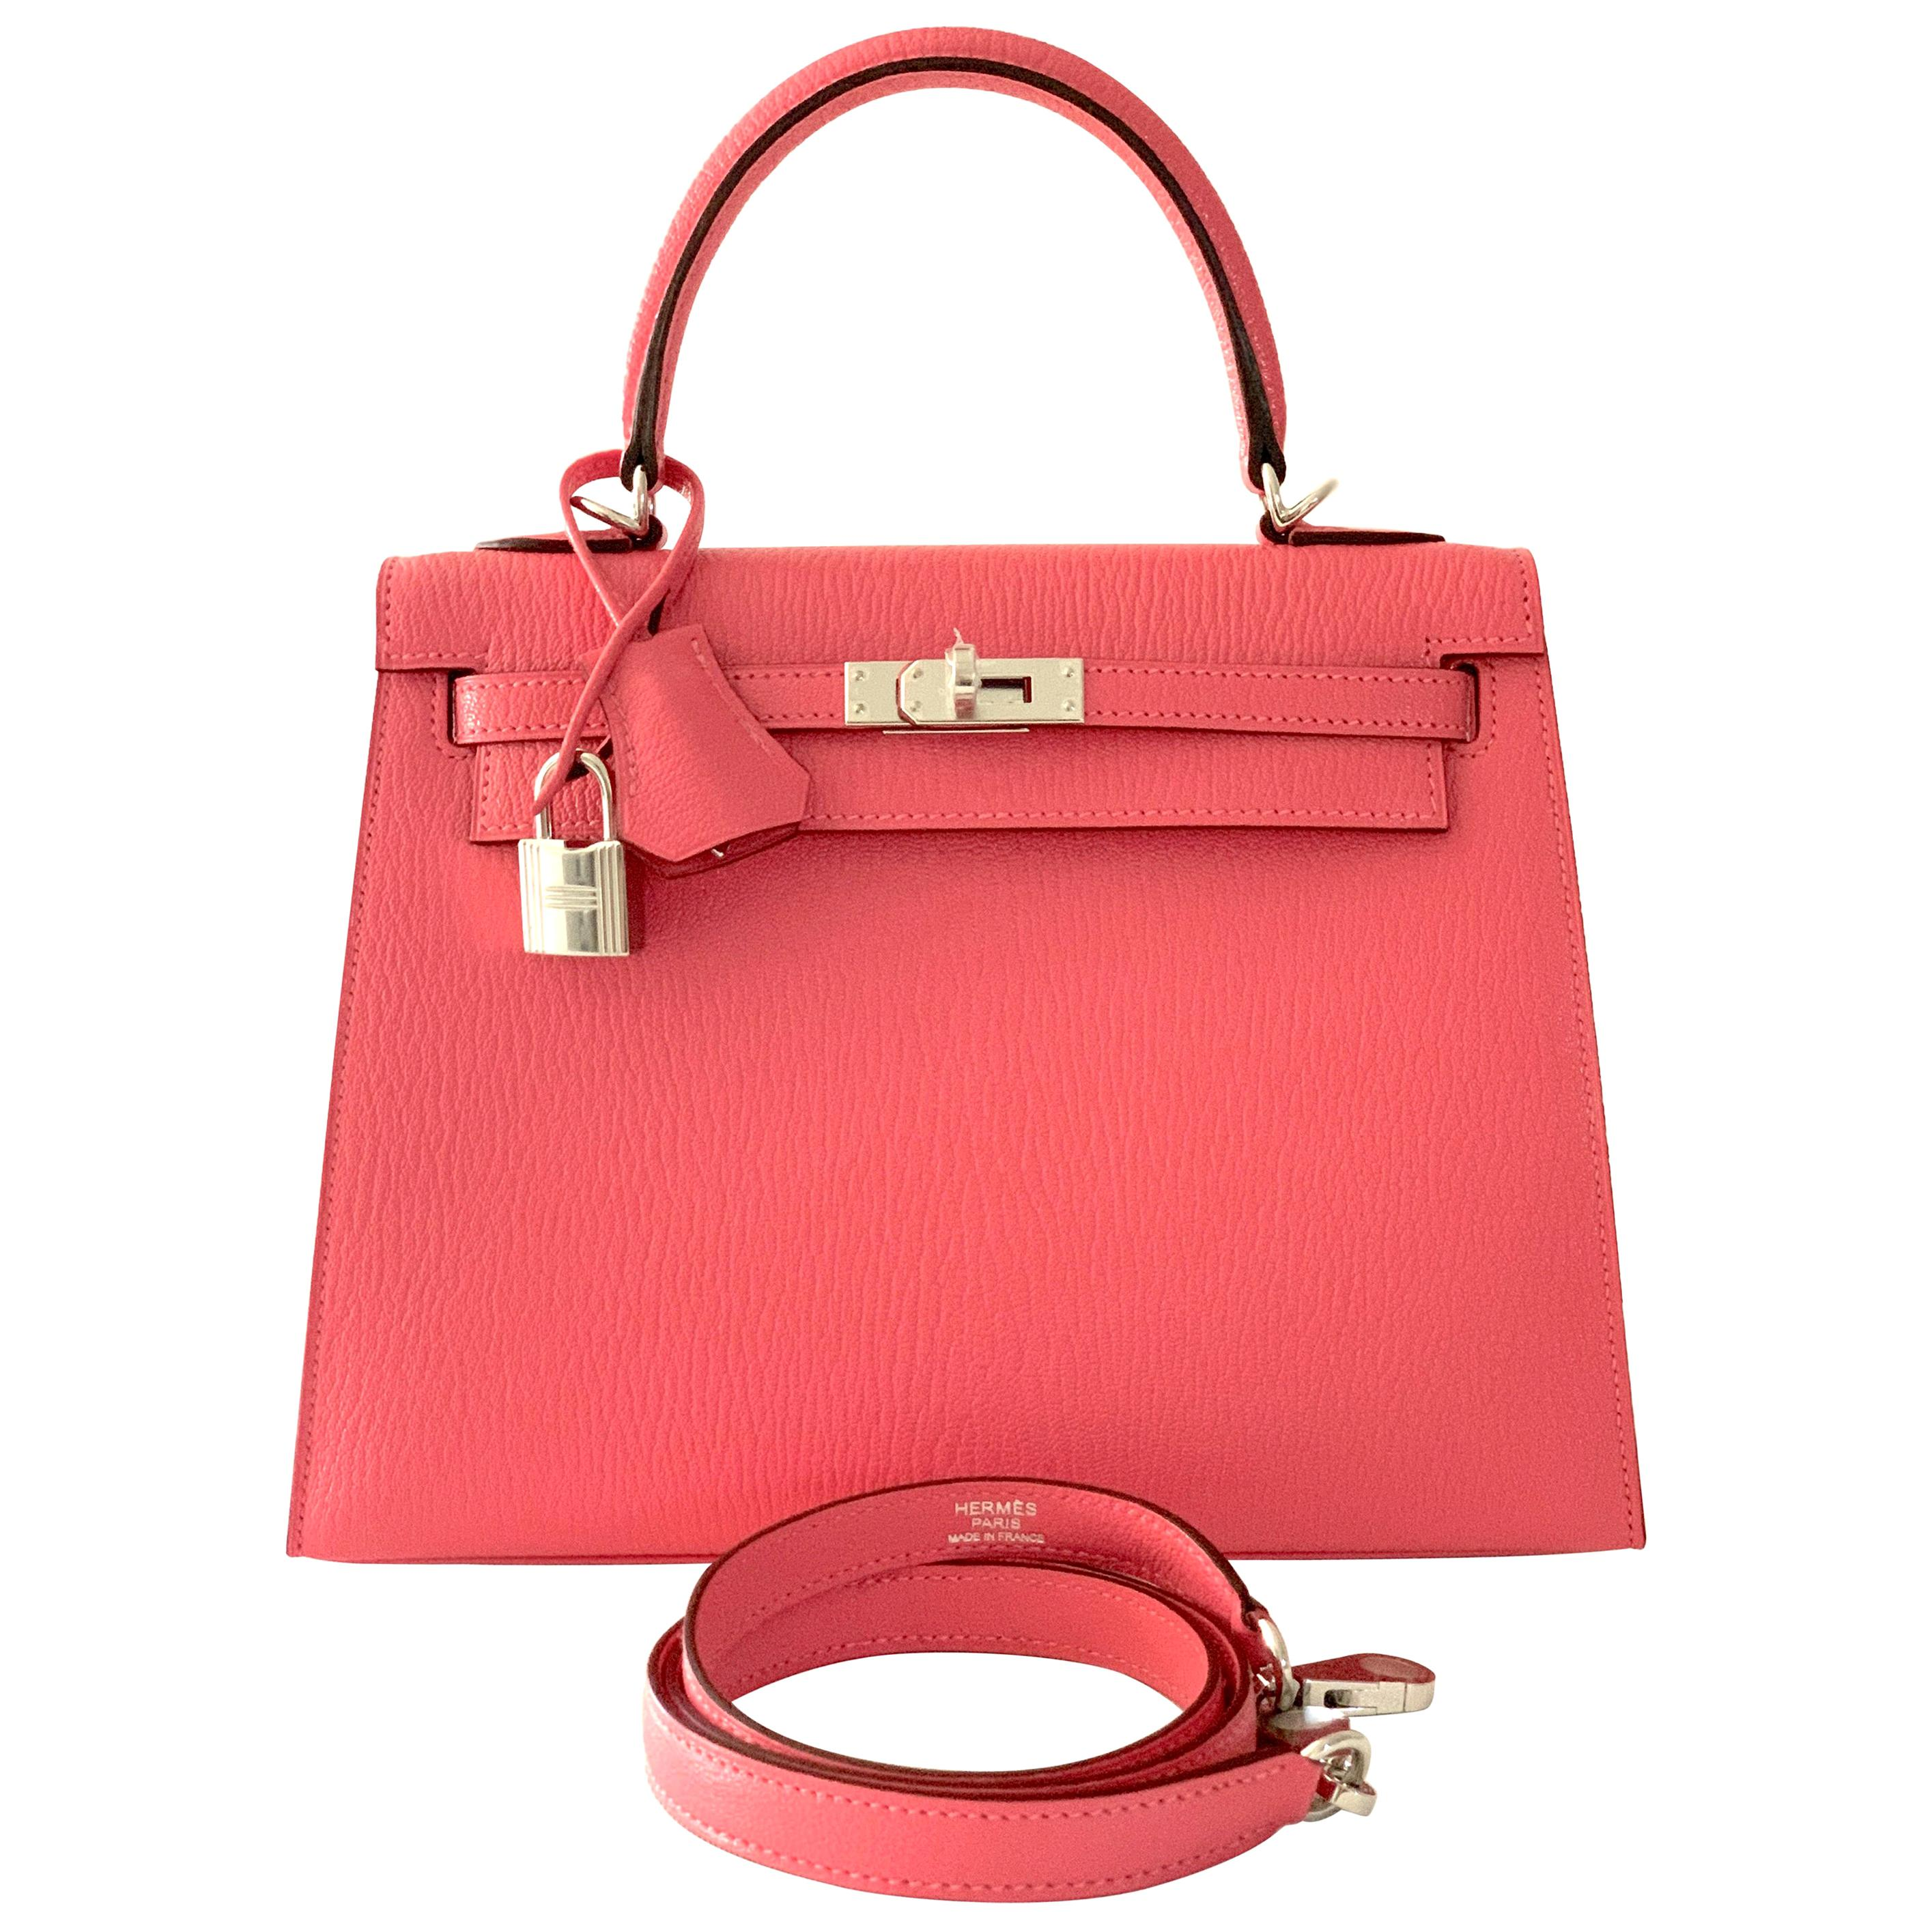 Hermes Kelly 25 Rose Lipstick PInk Chevre Limited Edition Sellier Bag